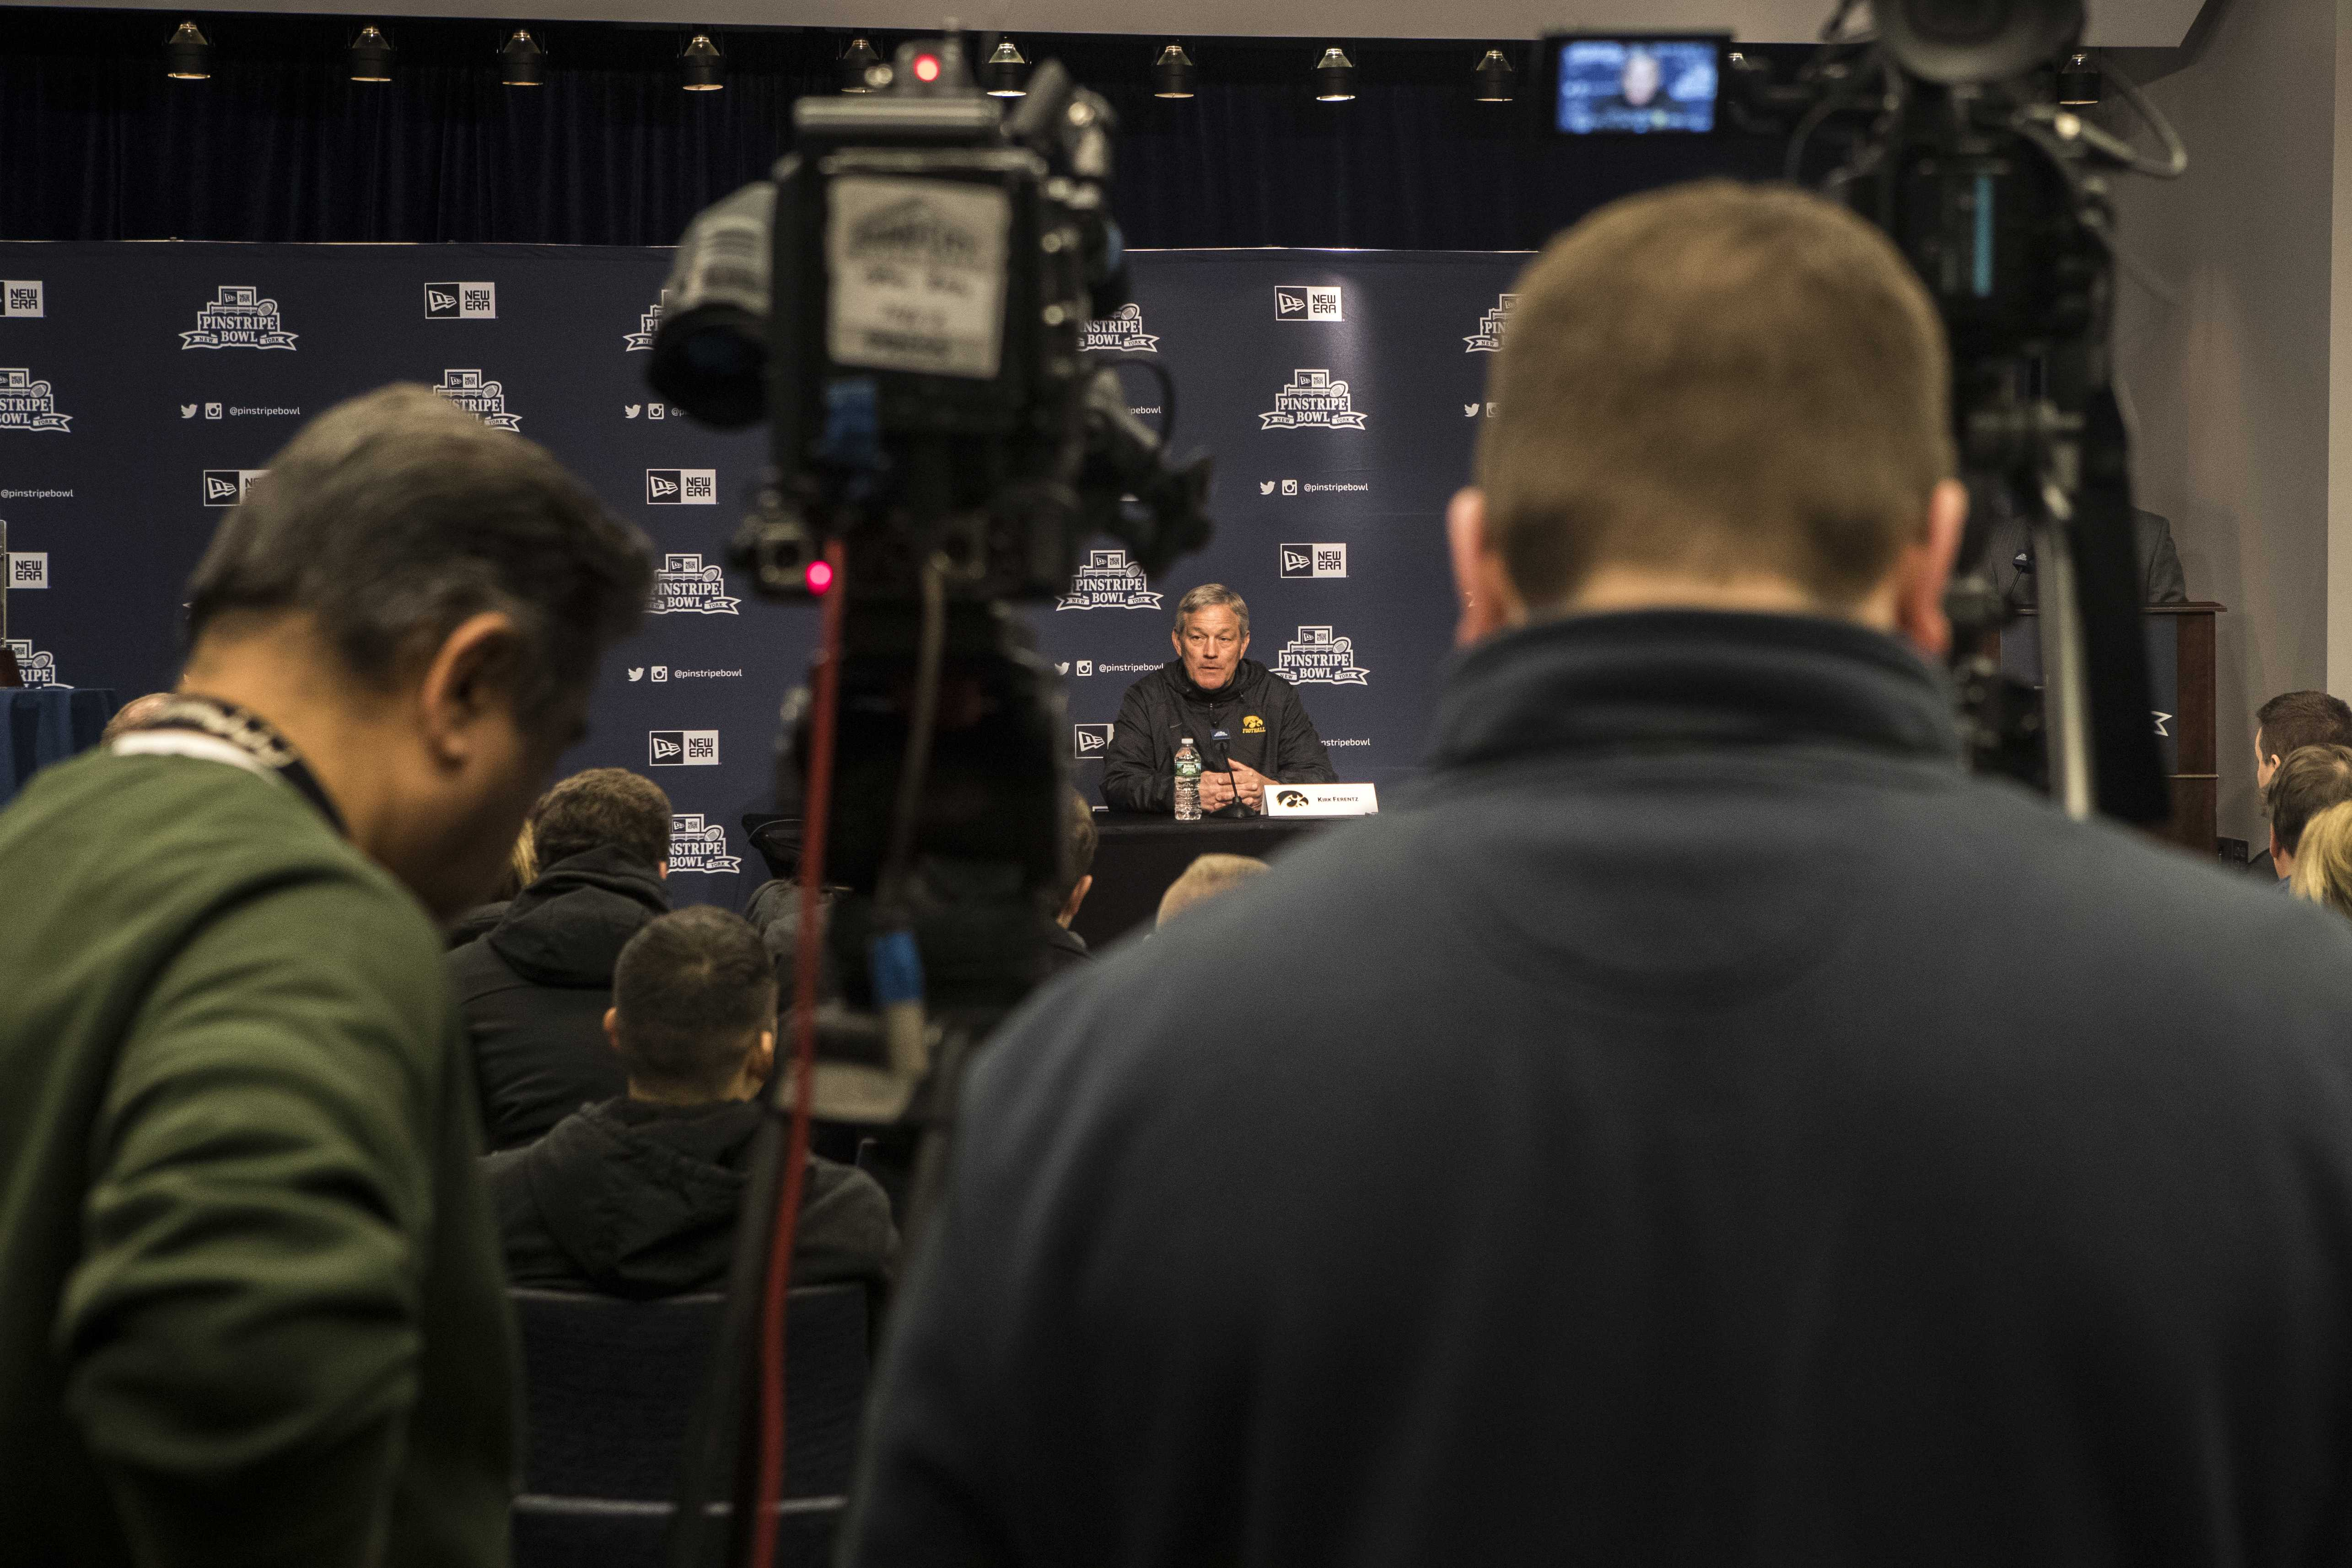 Highlights from head coaches press conference